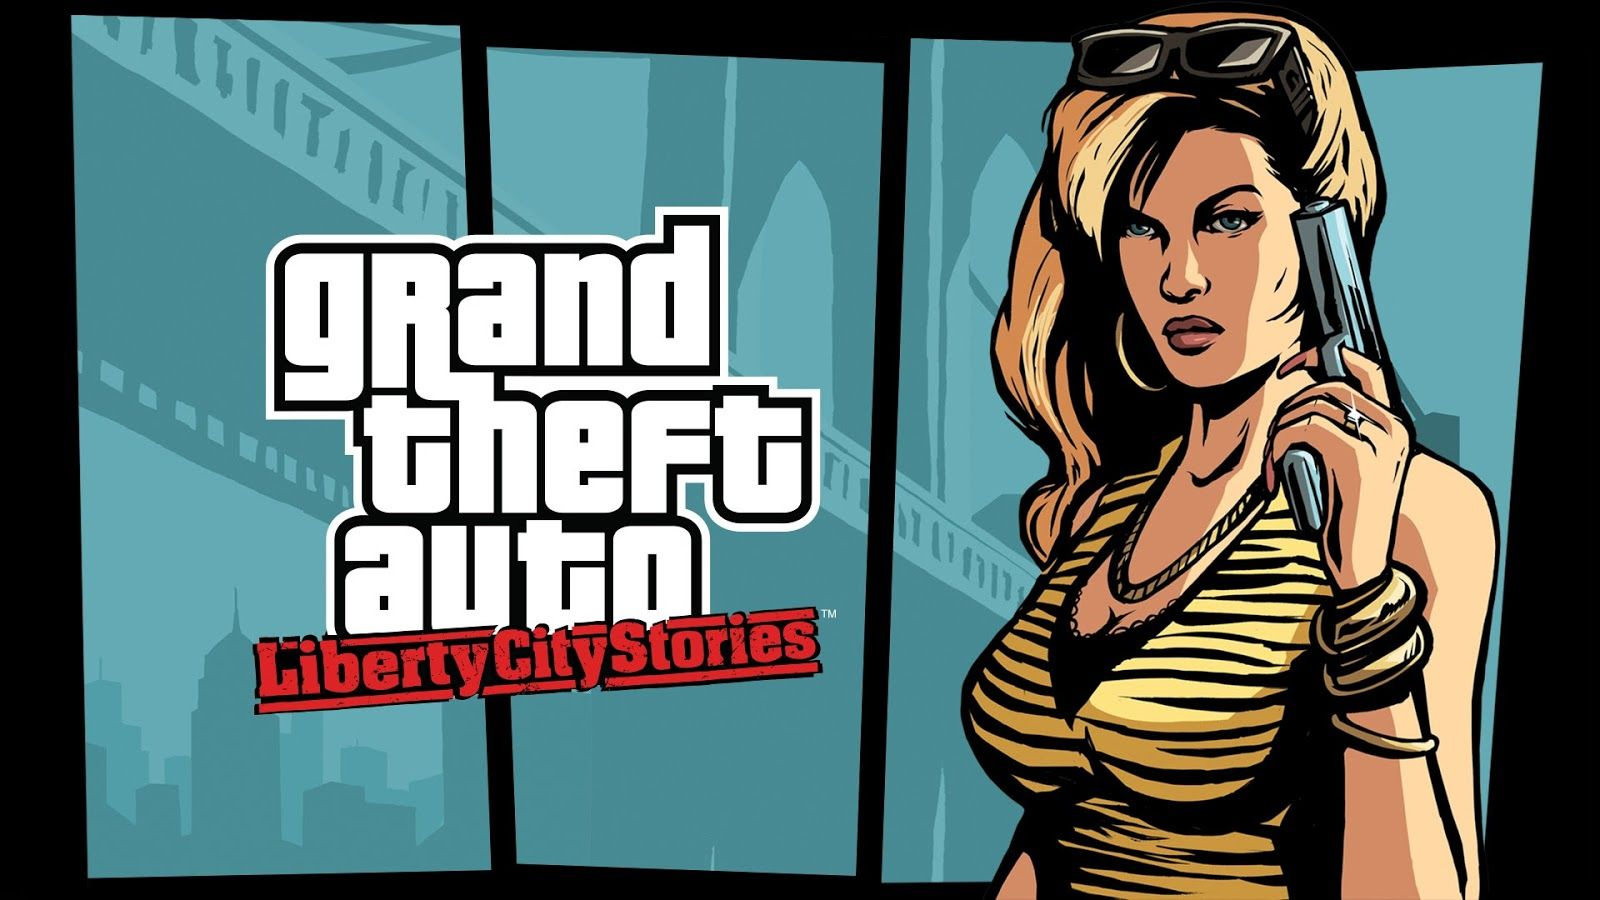 Gta Liberty City Stories Ppsspp Apk V1 01 Rom For Android Free 4 Phones Grand Theft Auto Grand Theft Auto Games Liberty